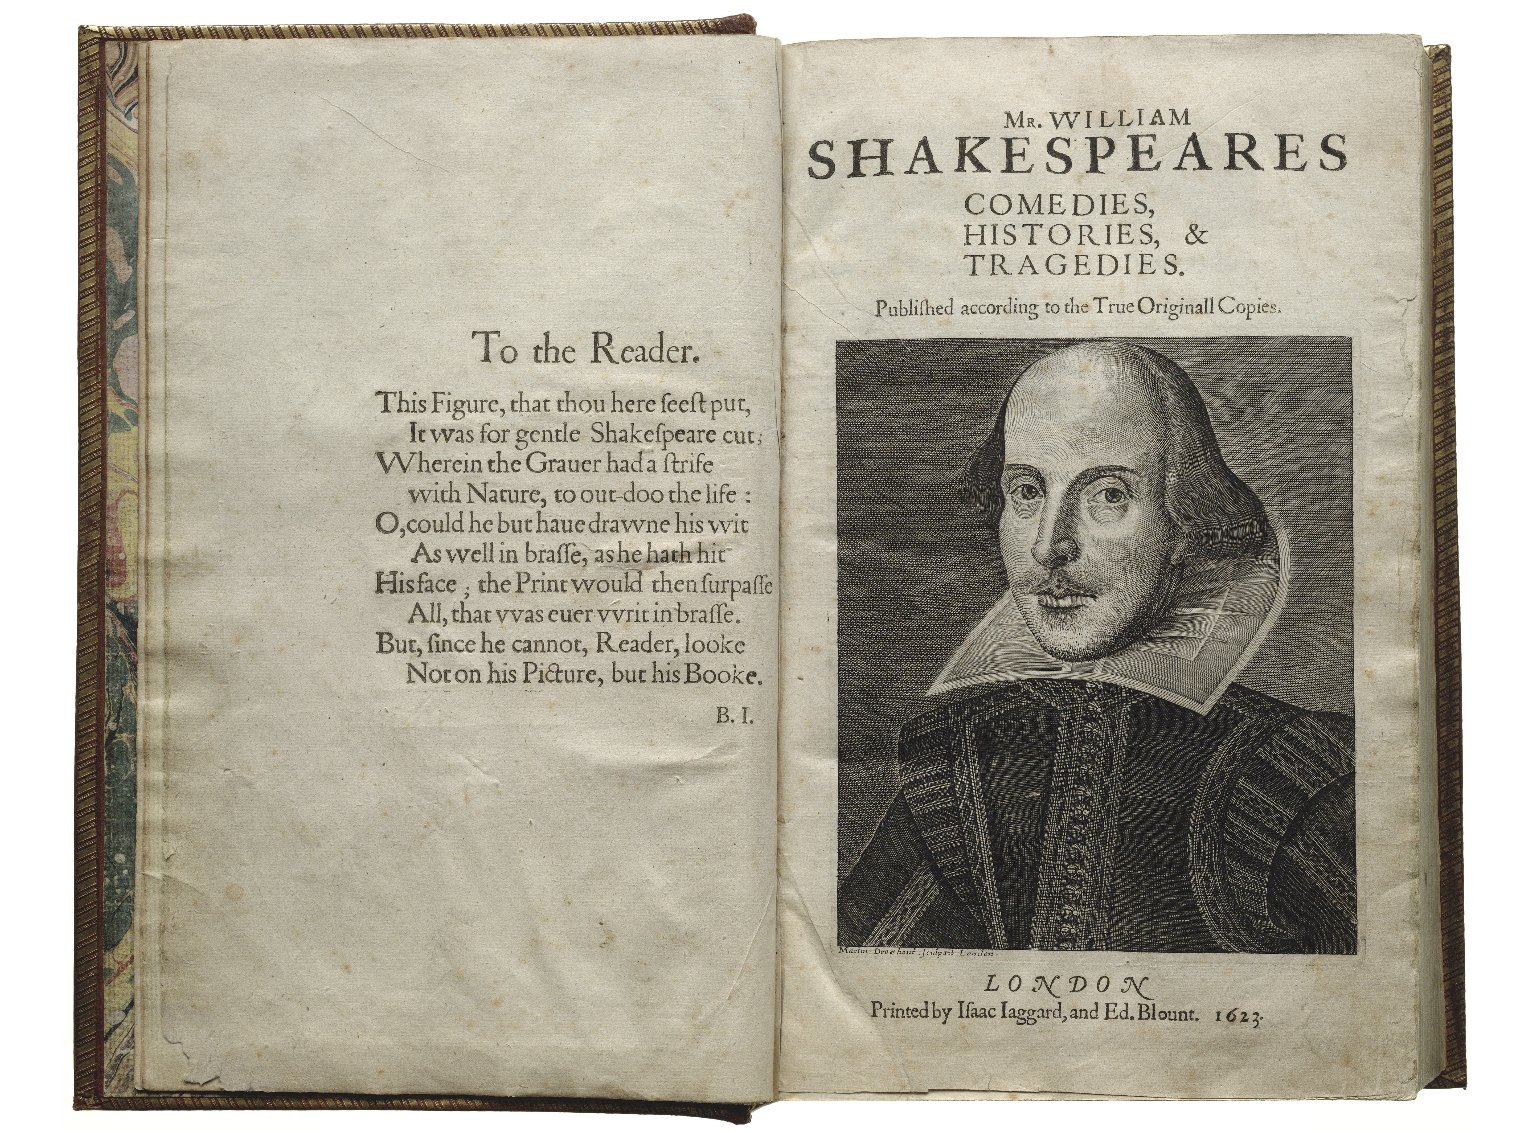 The First Folio of William Shakespeare